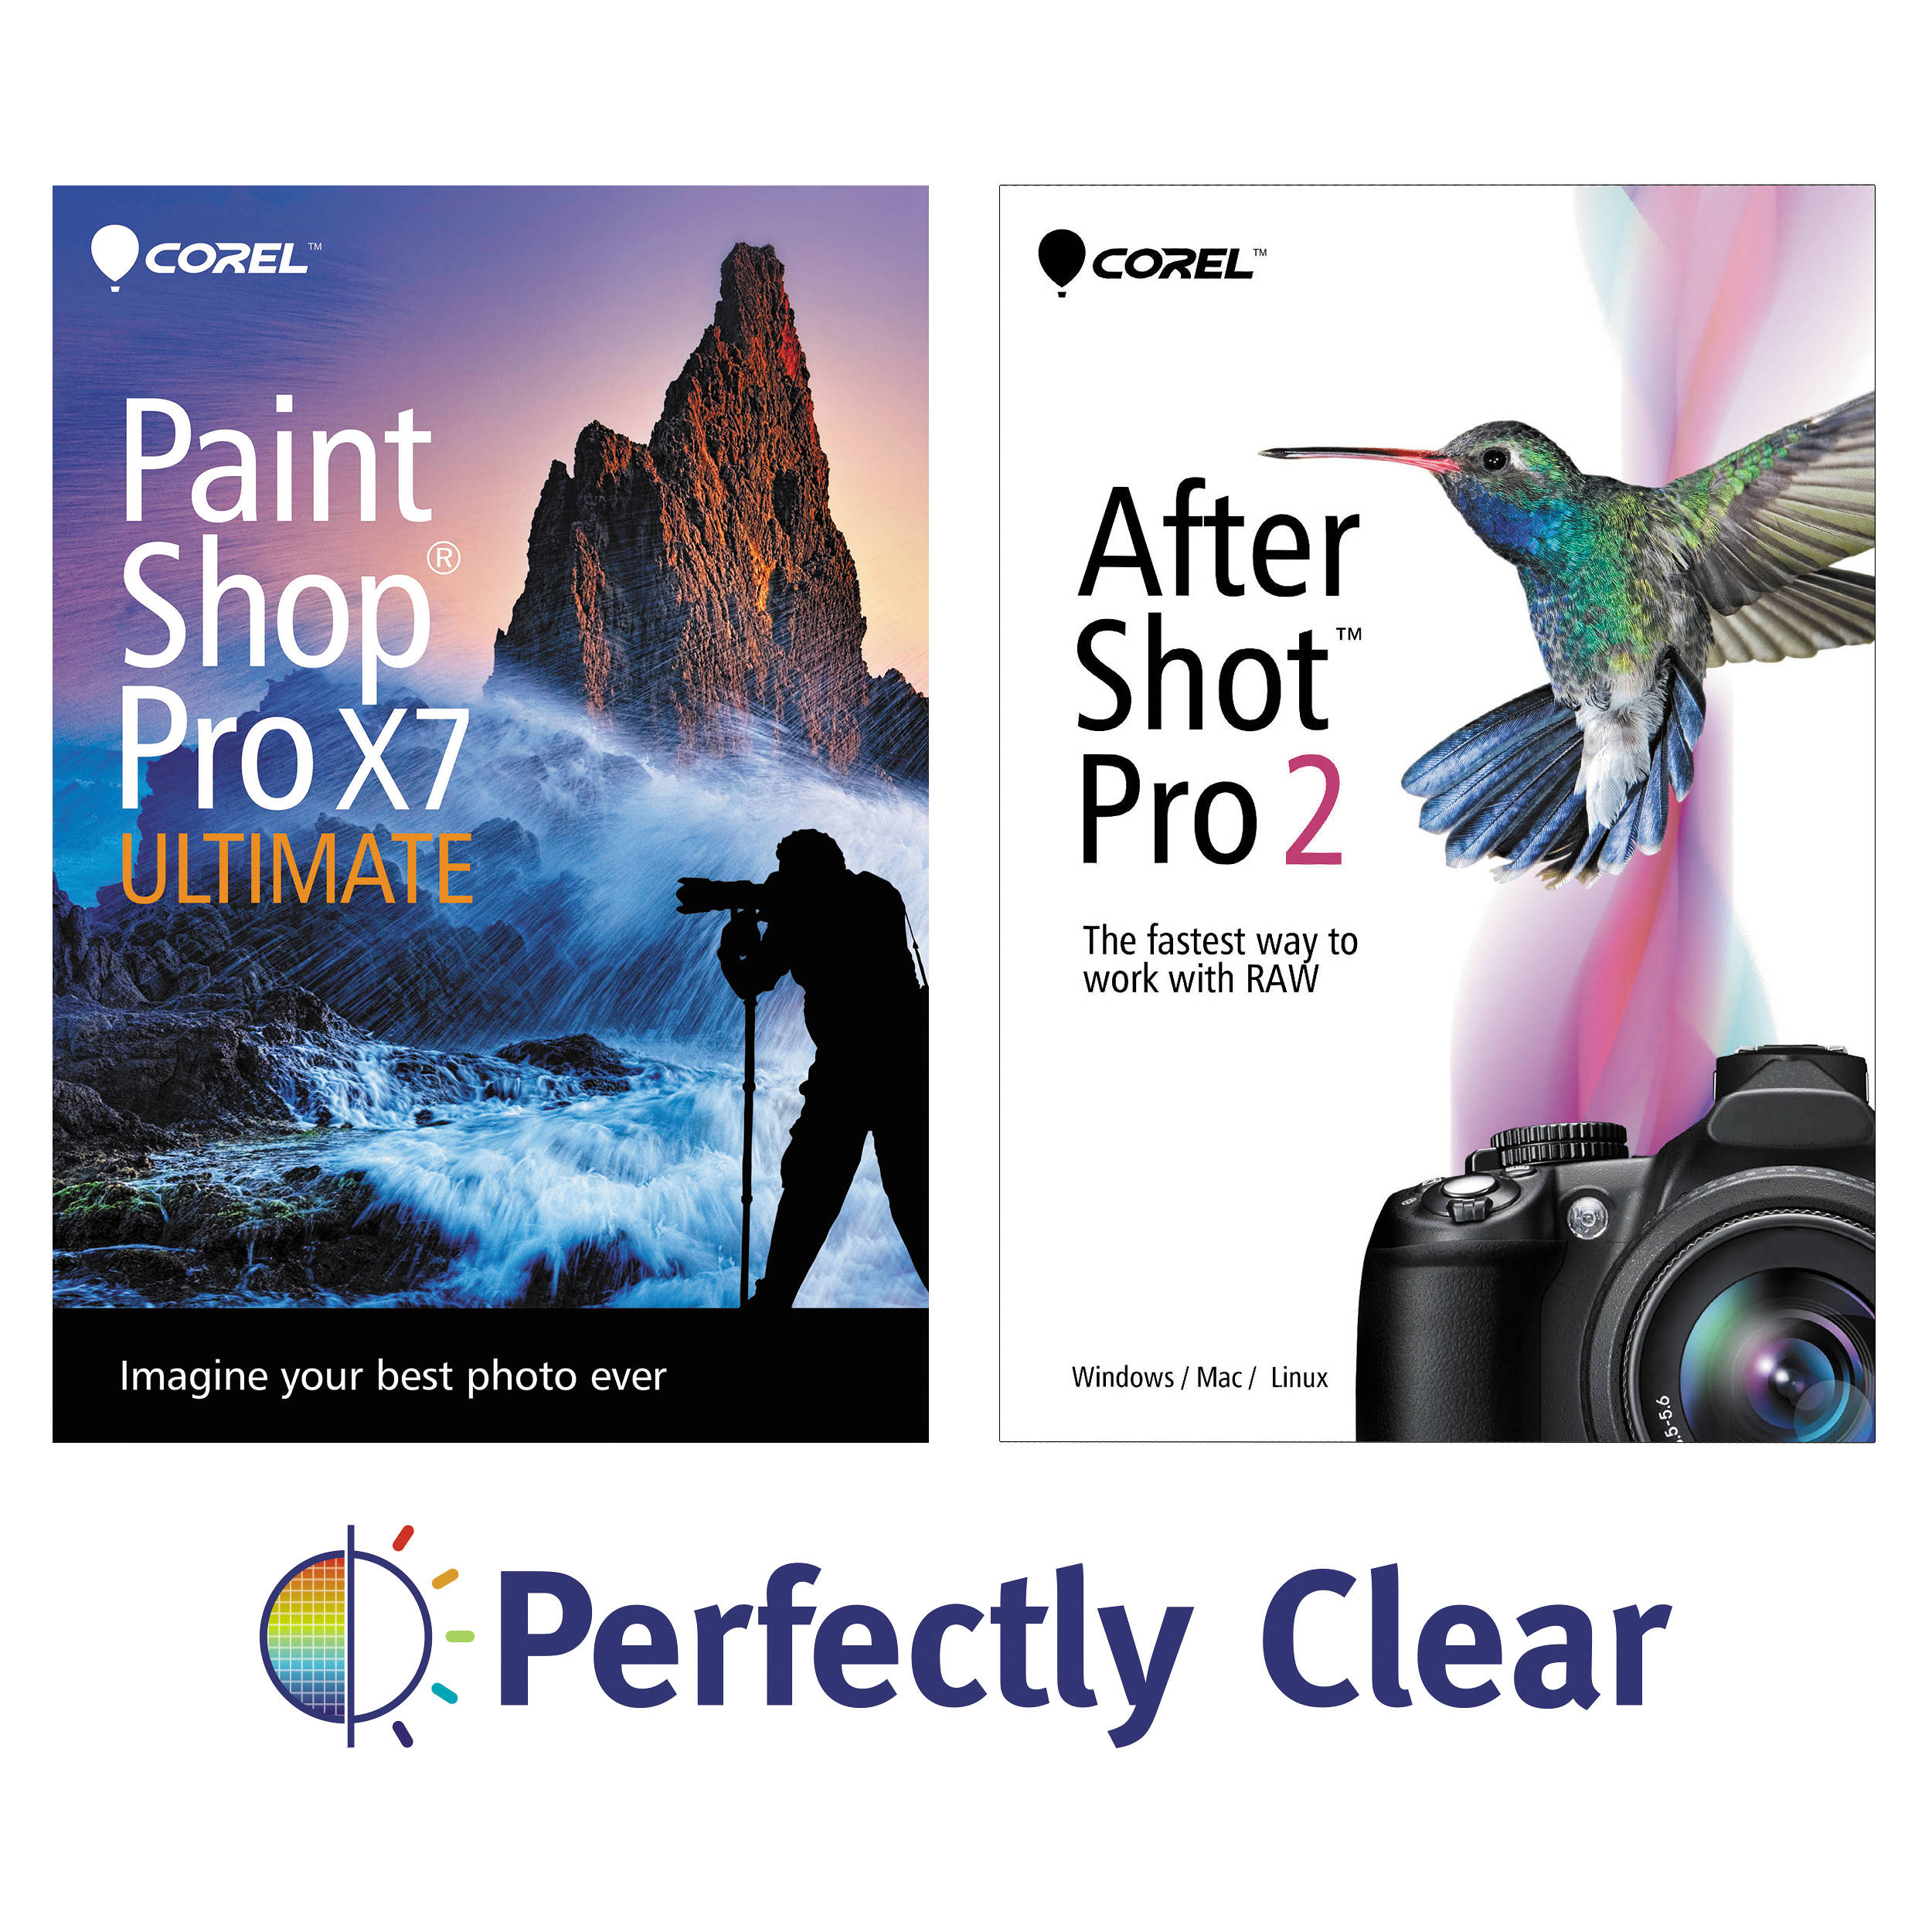 Deals, Savings & Special Offers on Top Corel Products Every Day